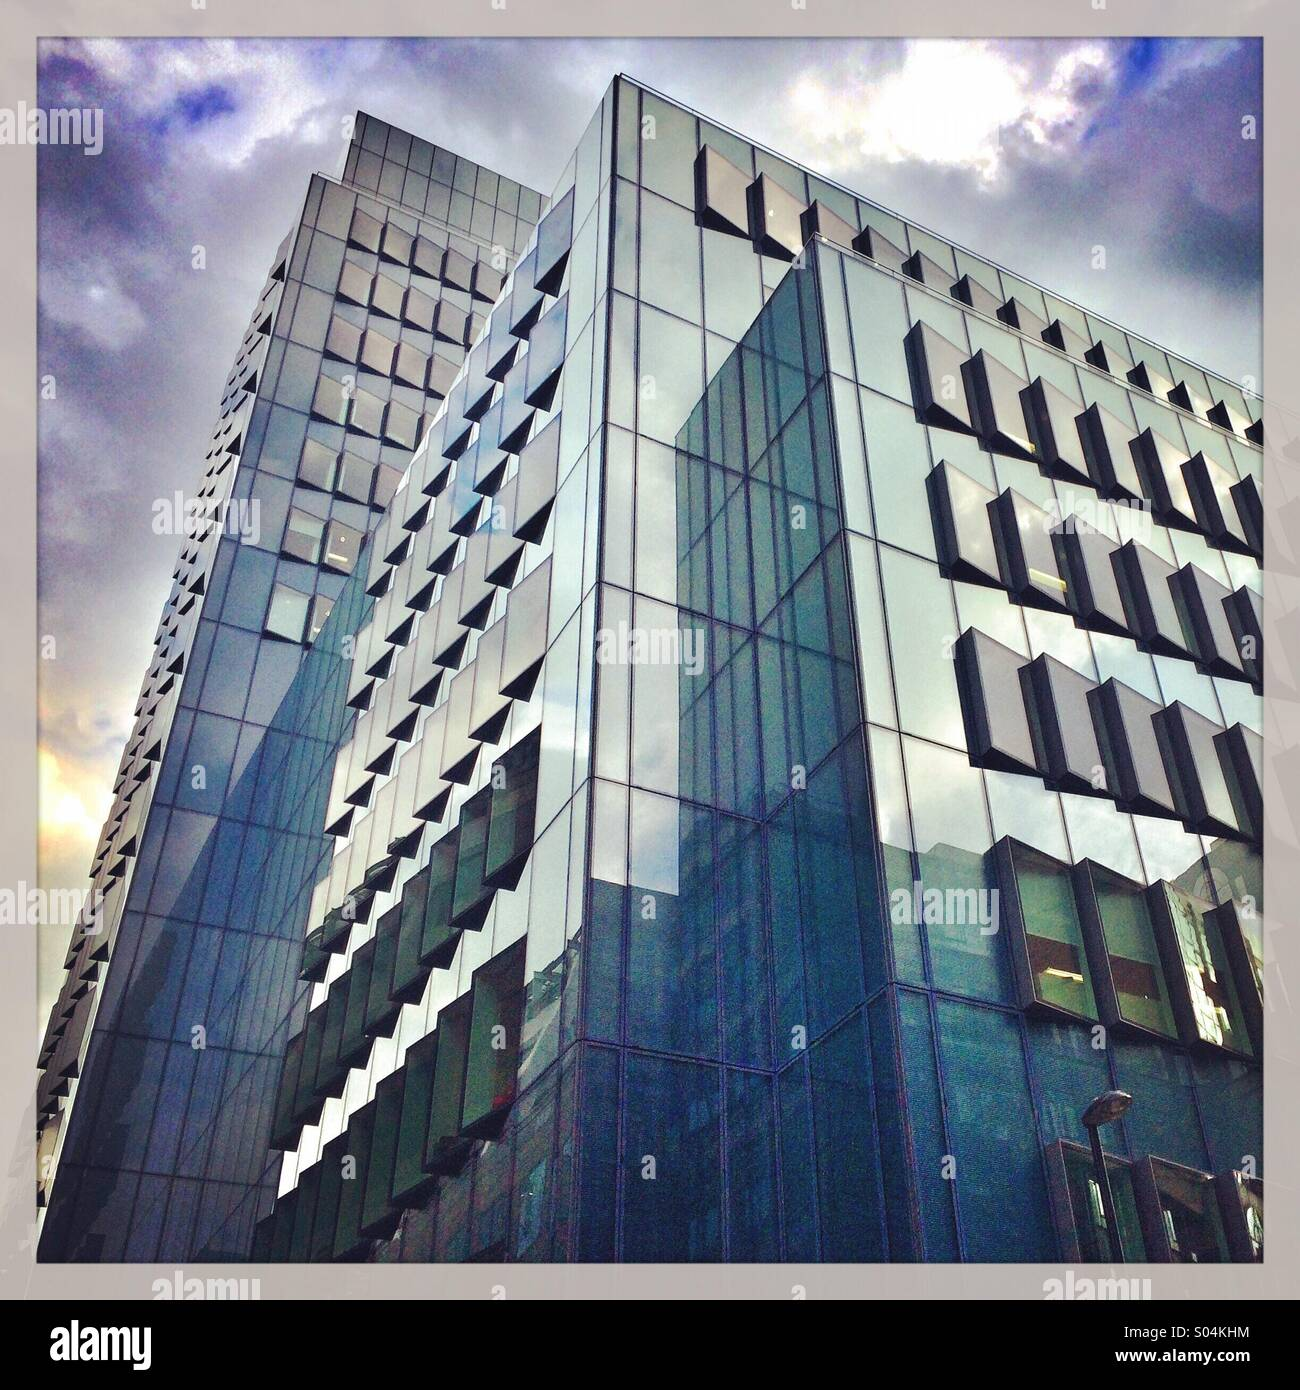 Offices block in London - Stock Image